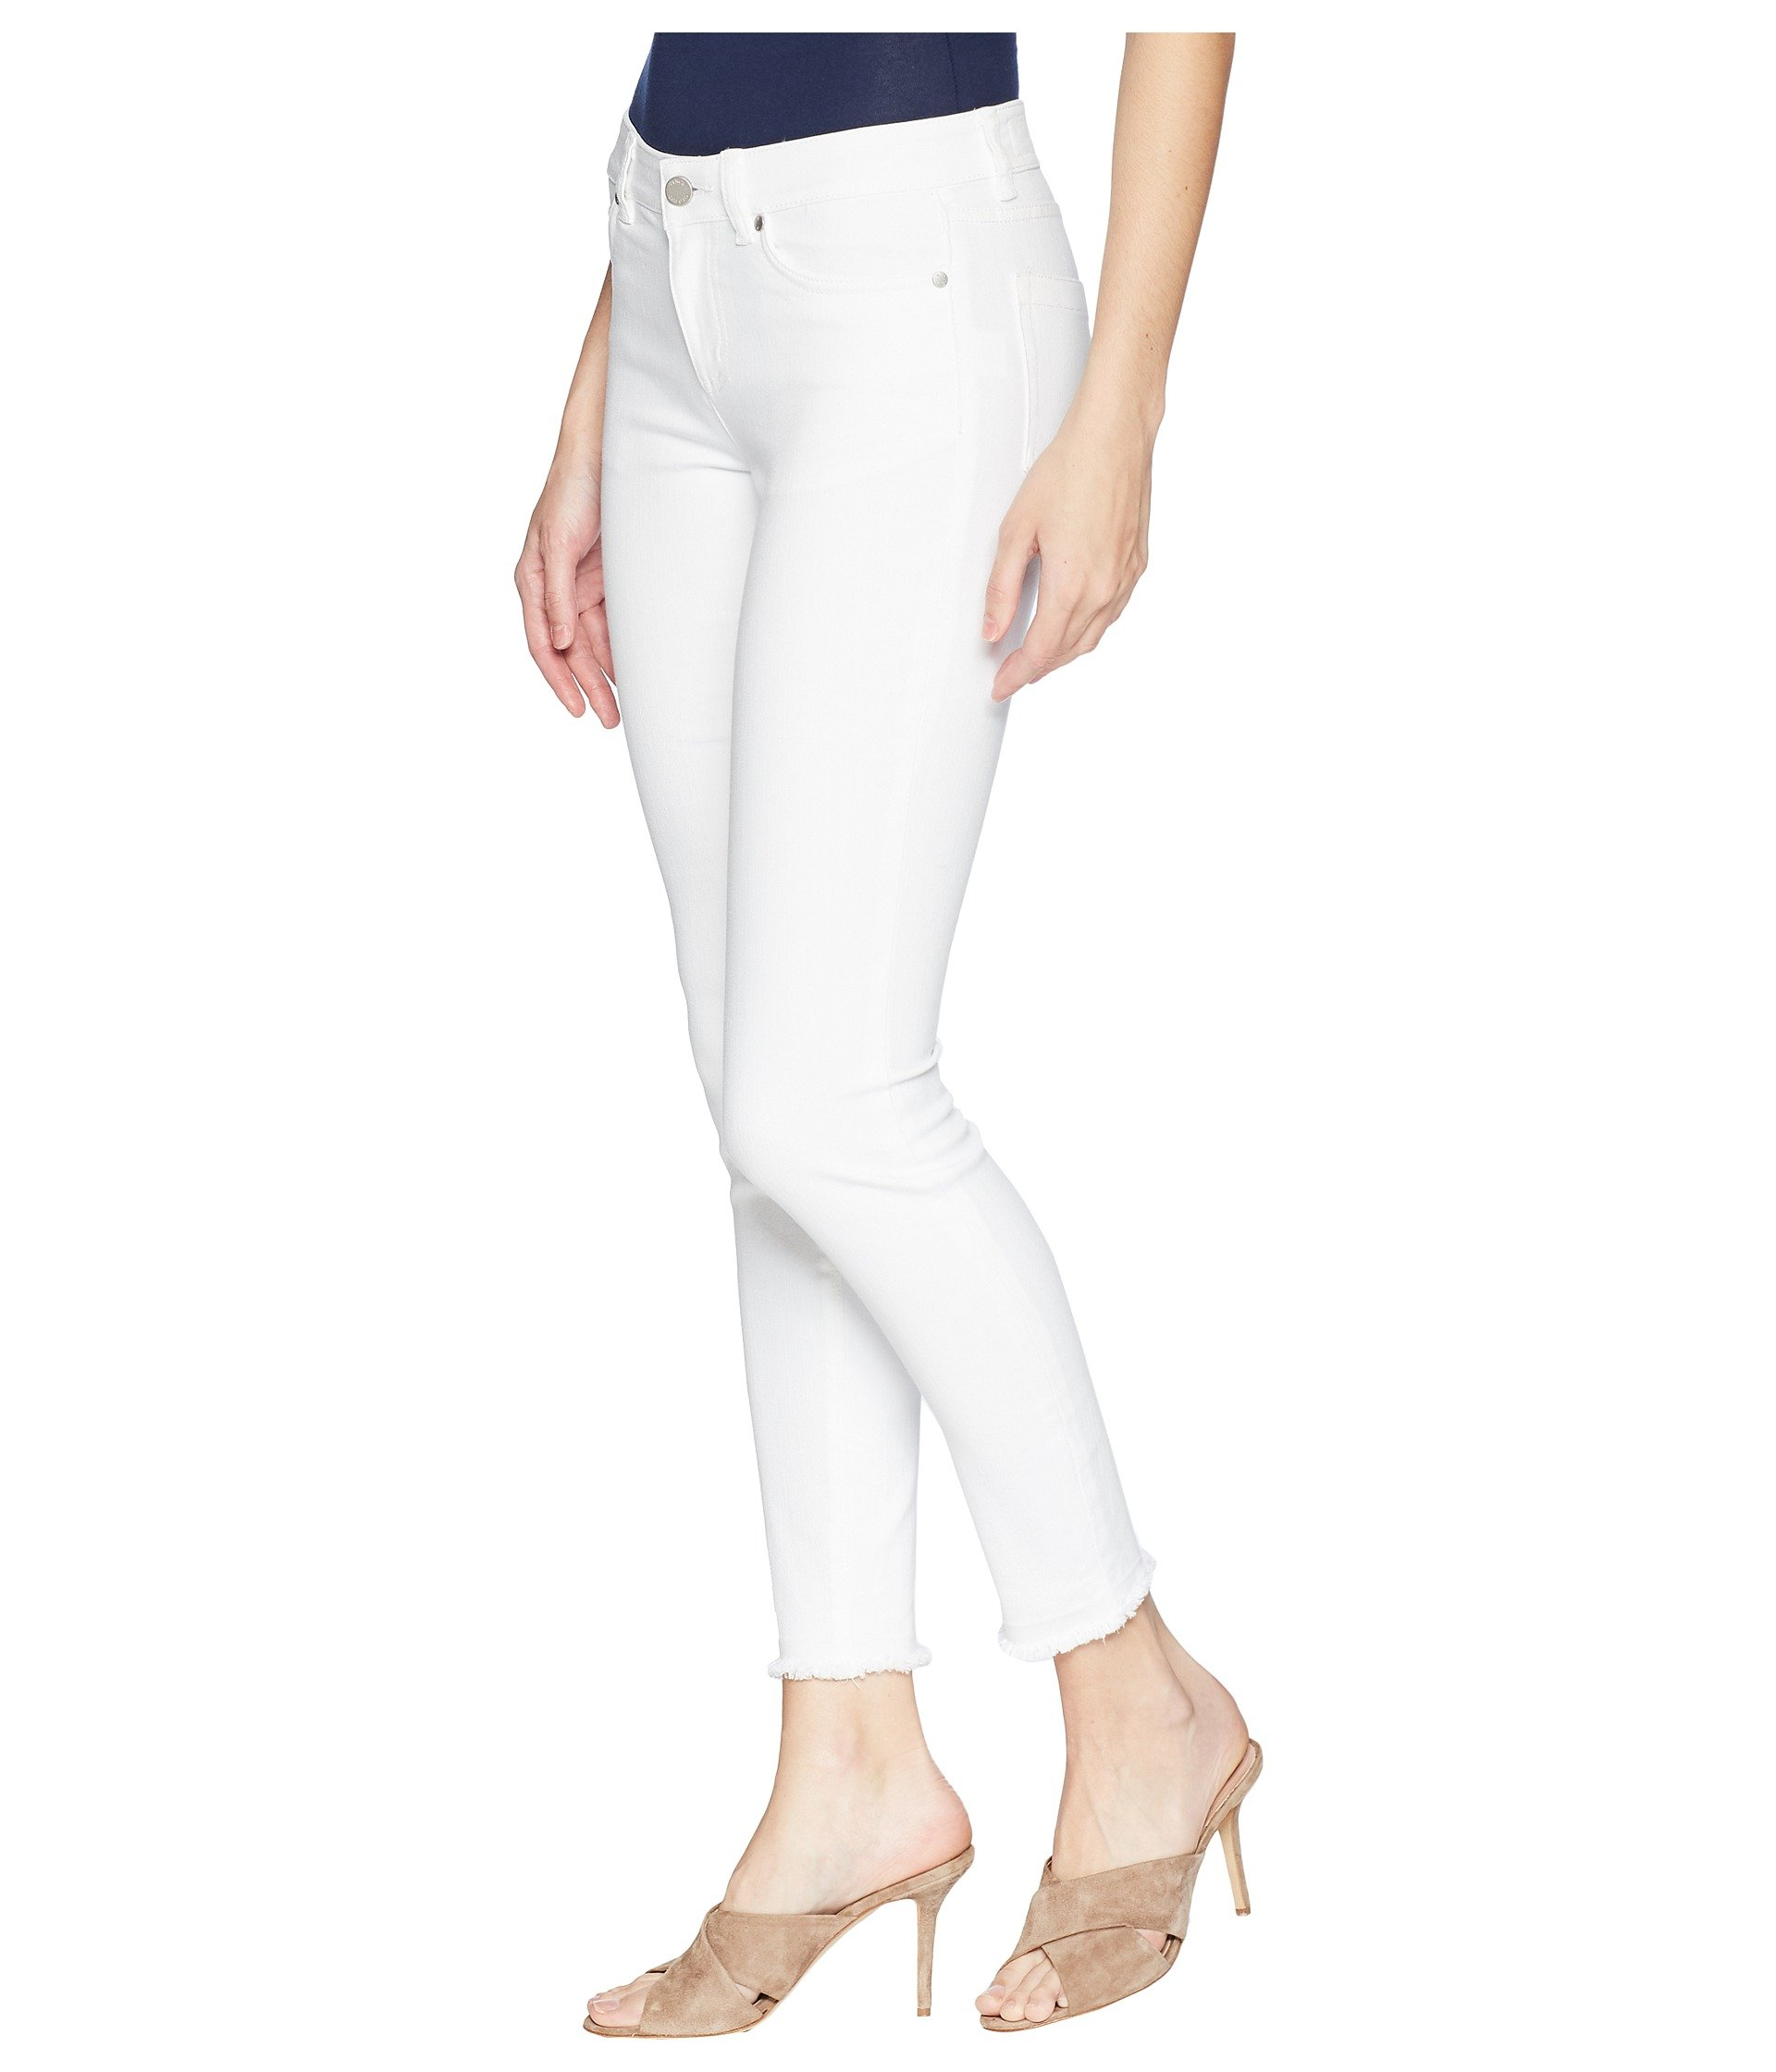 Two Five White Camuto Hem Vince Ultra Jeans Ankle In Frayed pocket By rwTrqS1